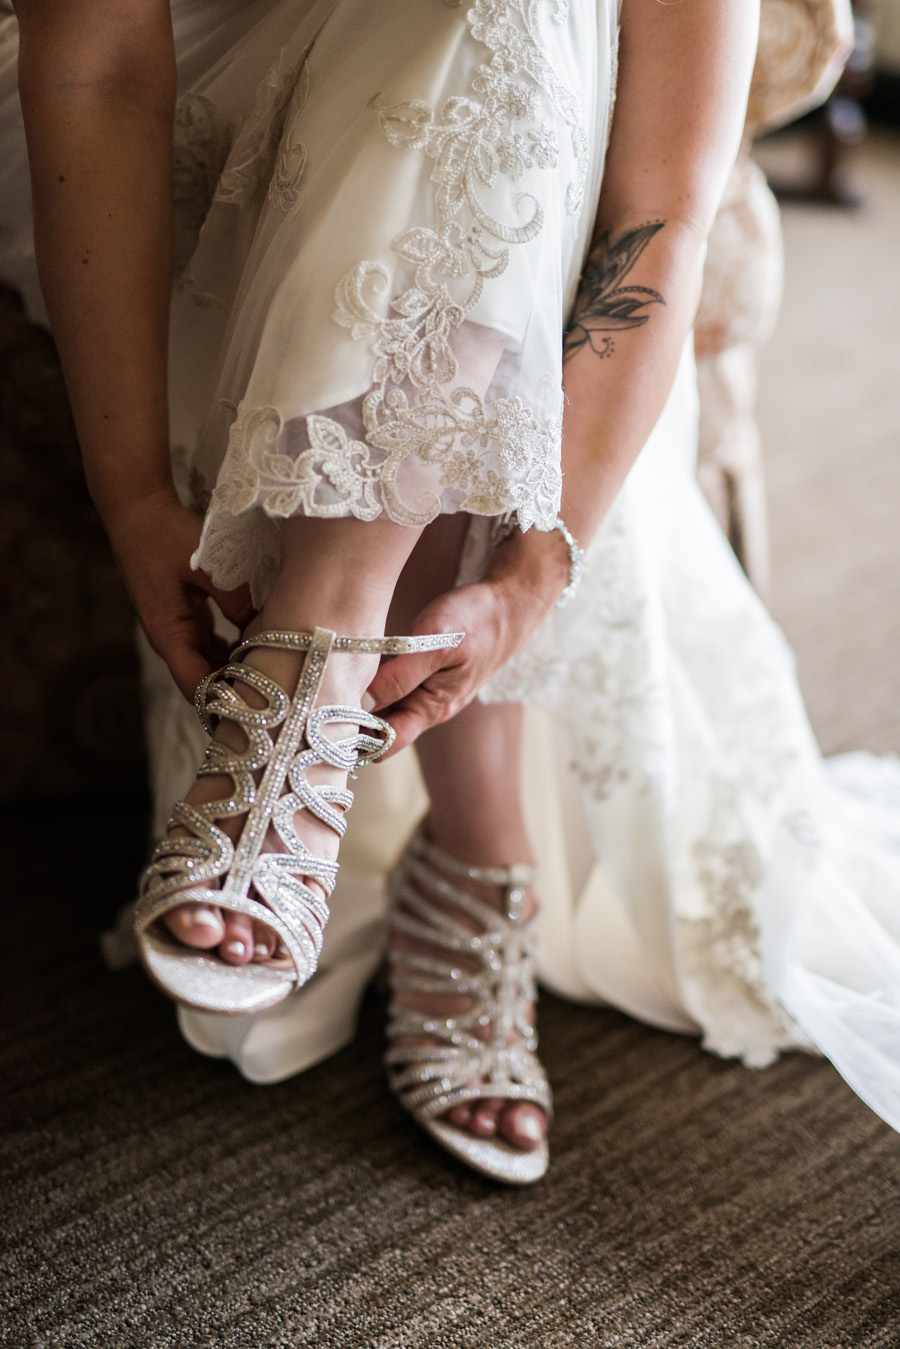 Bride puts on her shoes.